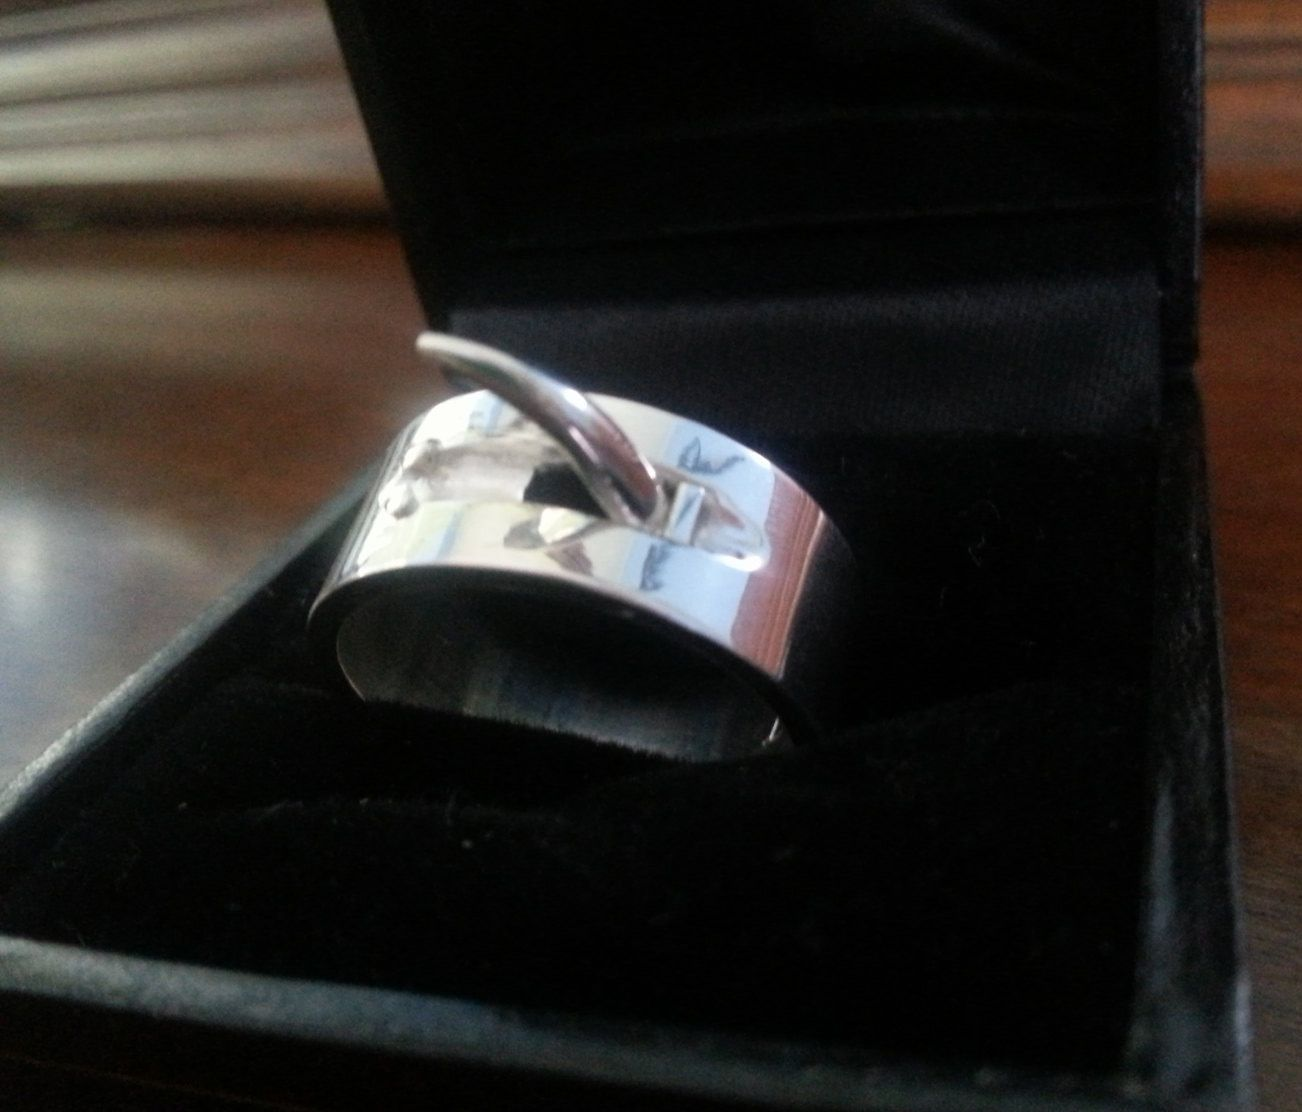 Attack On Titan Annie S Ring Attack On Titan Attack On Titan Anime Geeky Engagement Rings